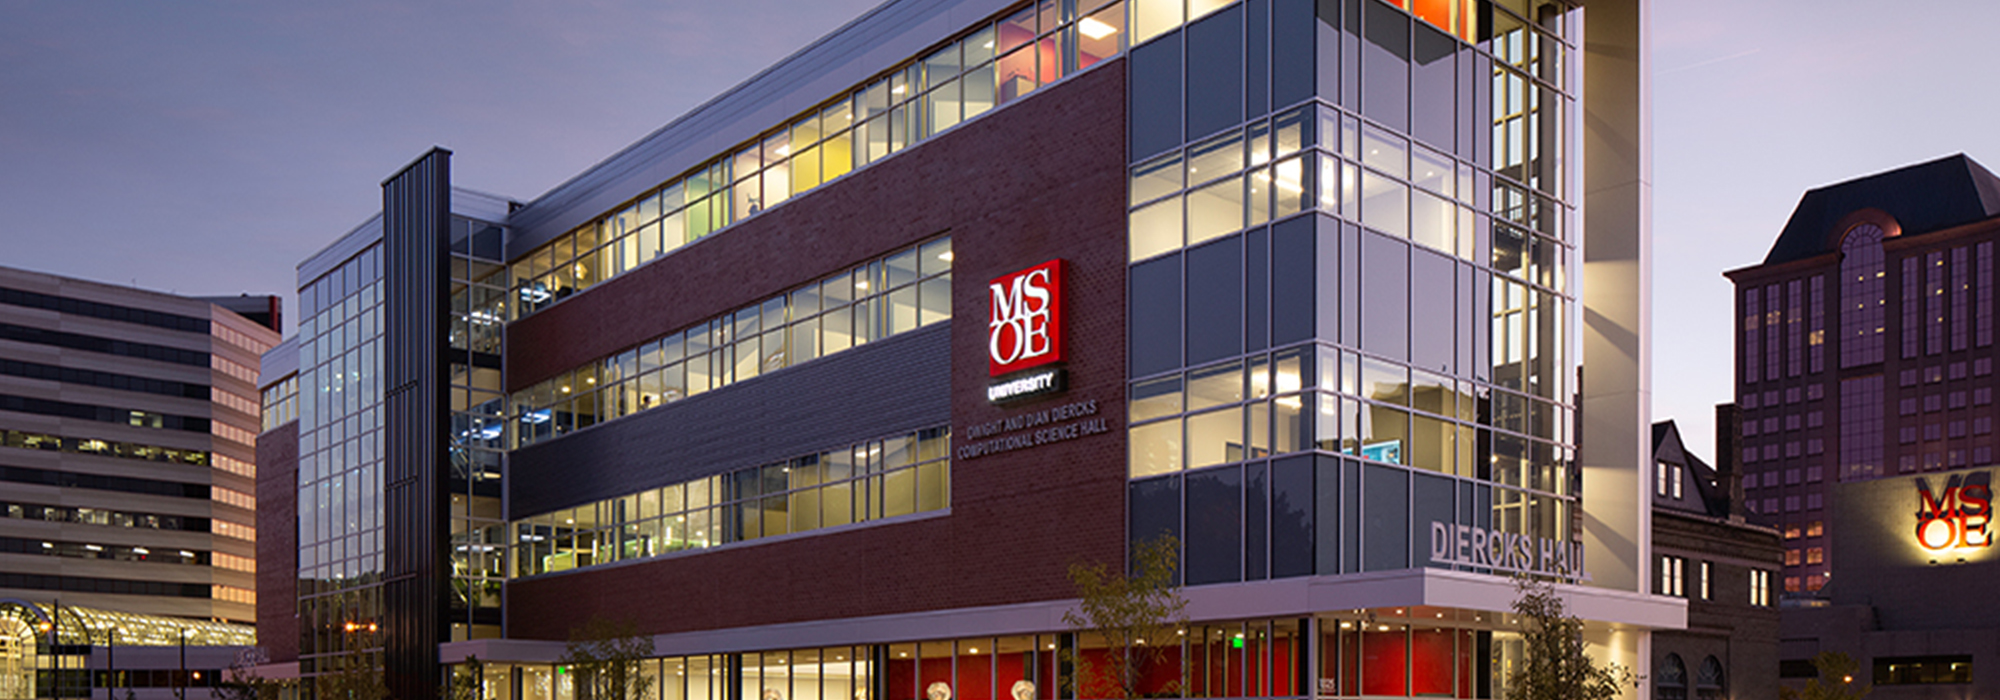 MSOE Dierks Hall_Header